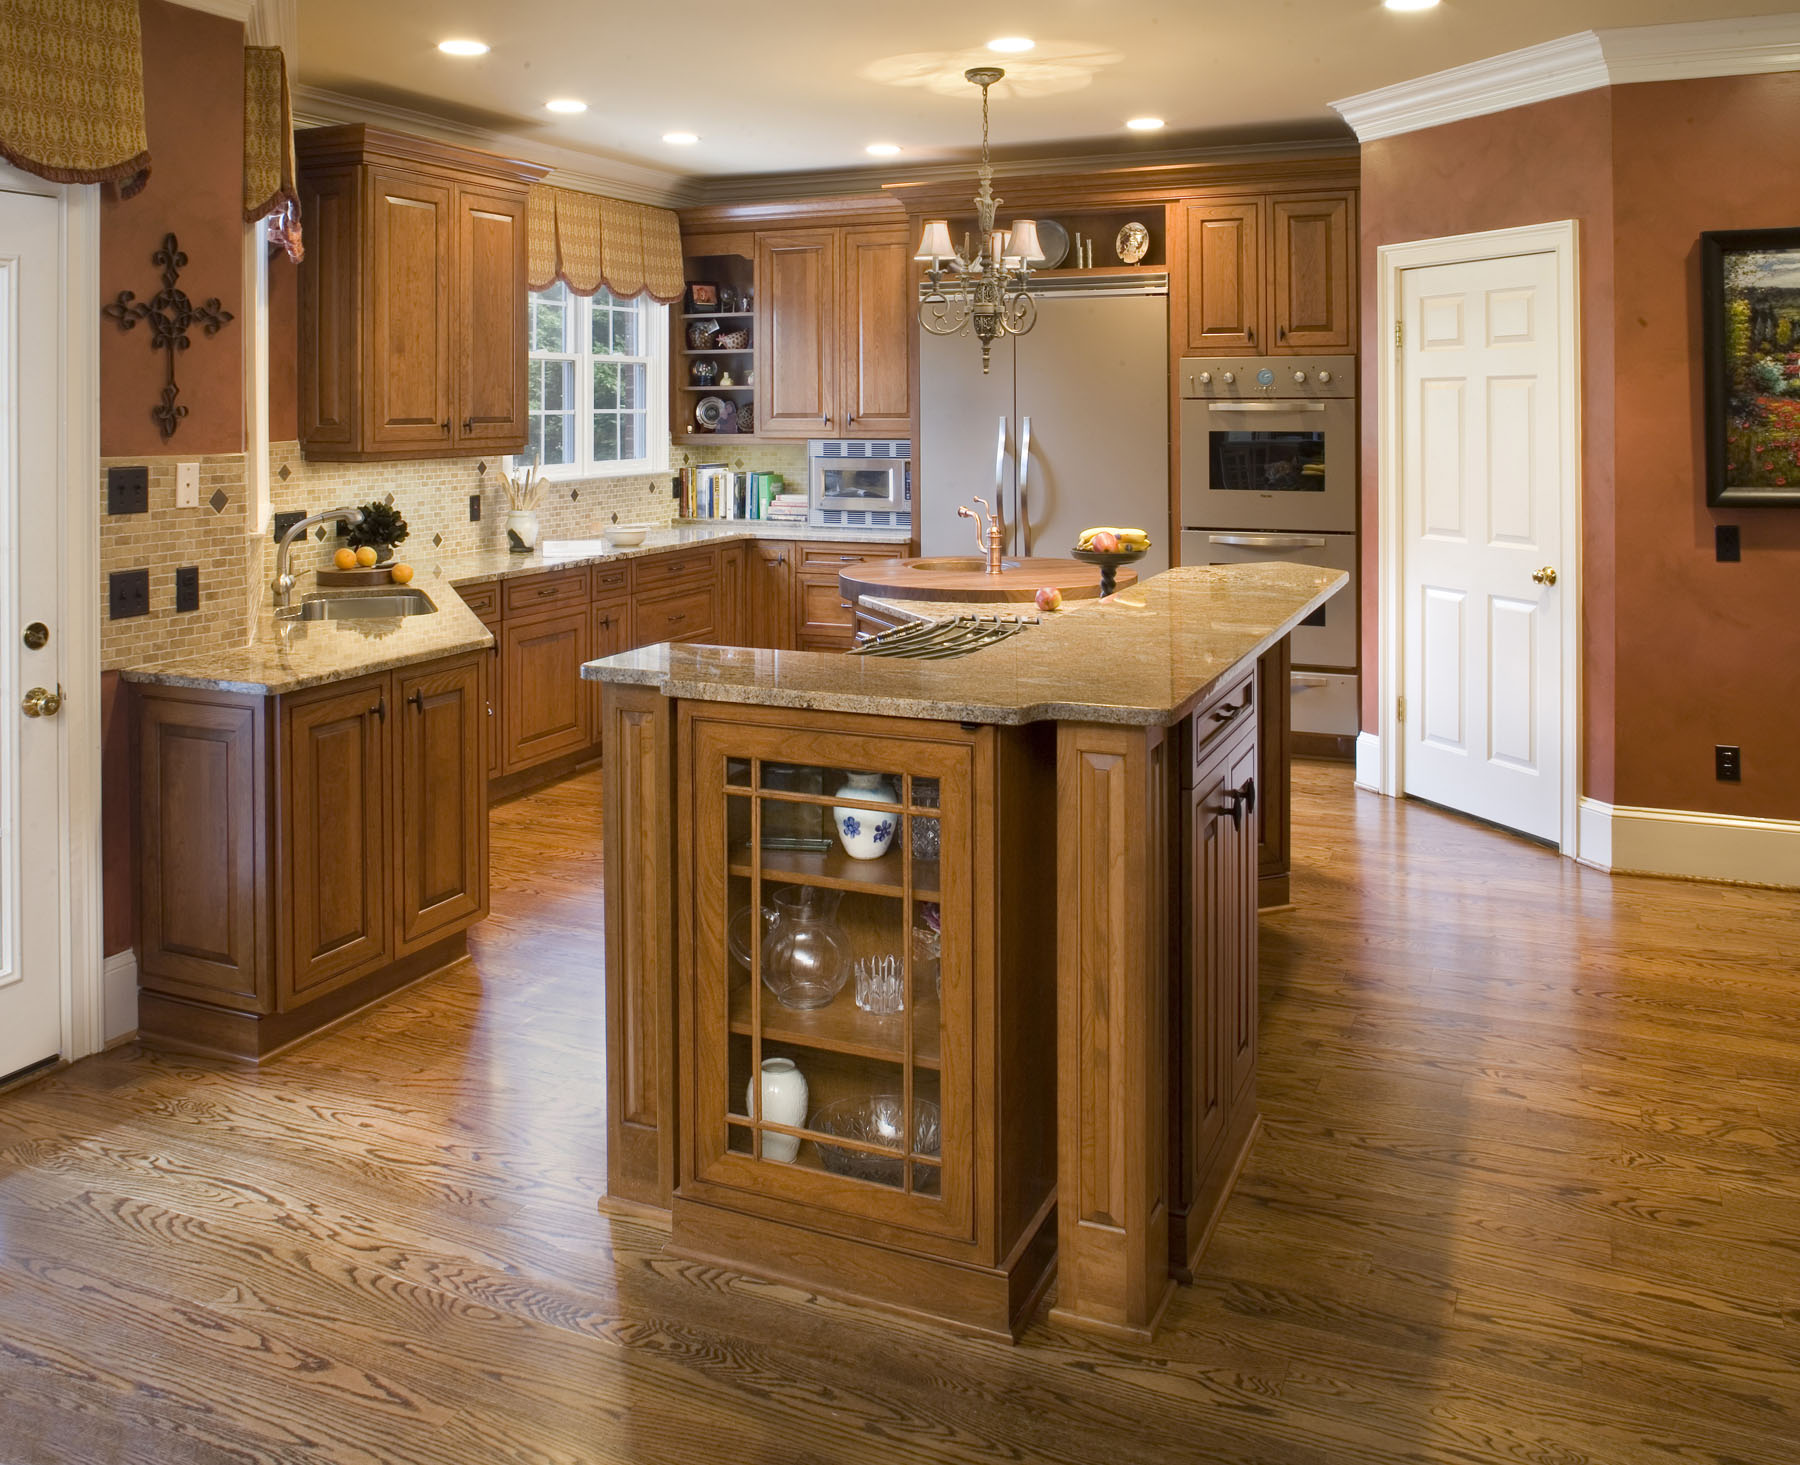 pittsburgh kitchen design and improvements nelson pittsburgh kitchen remodeling and design master remodelers